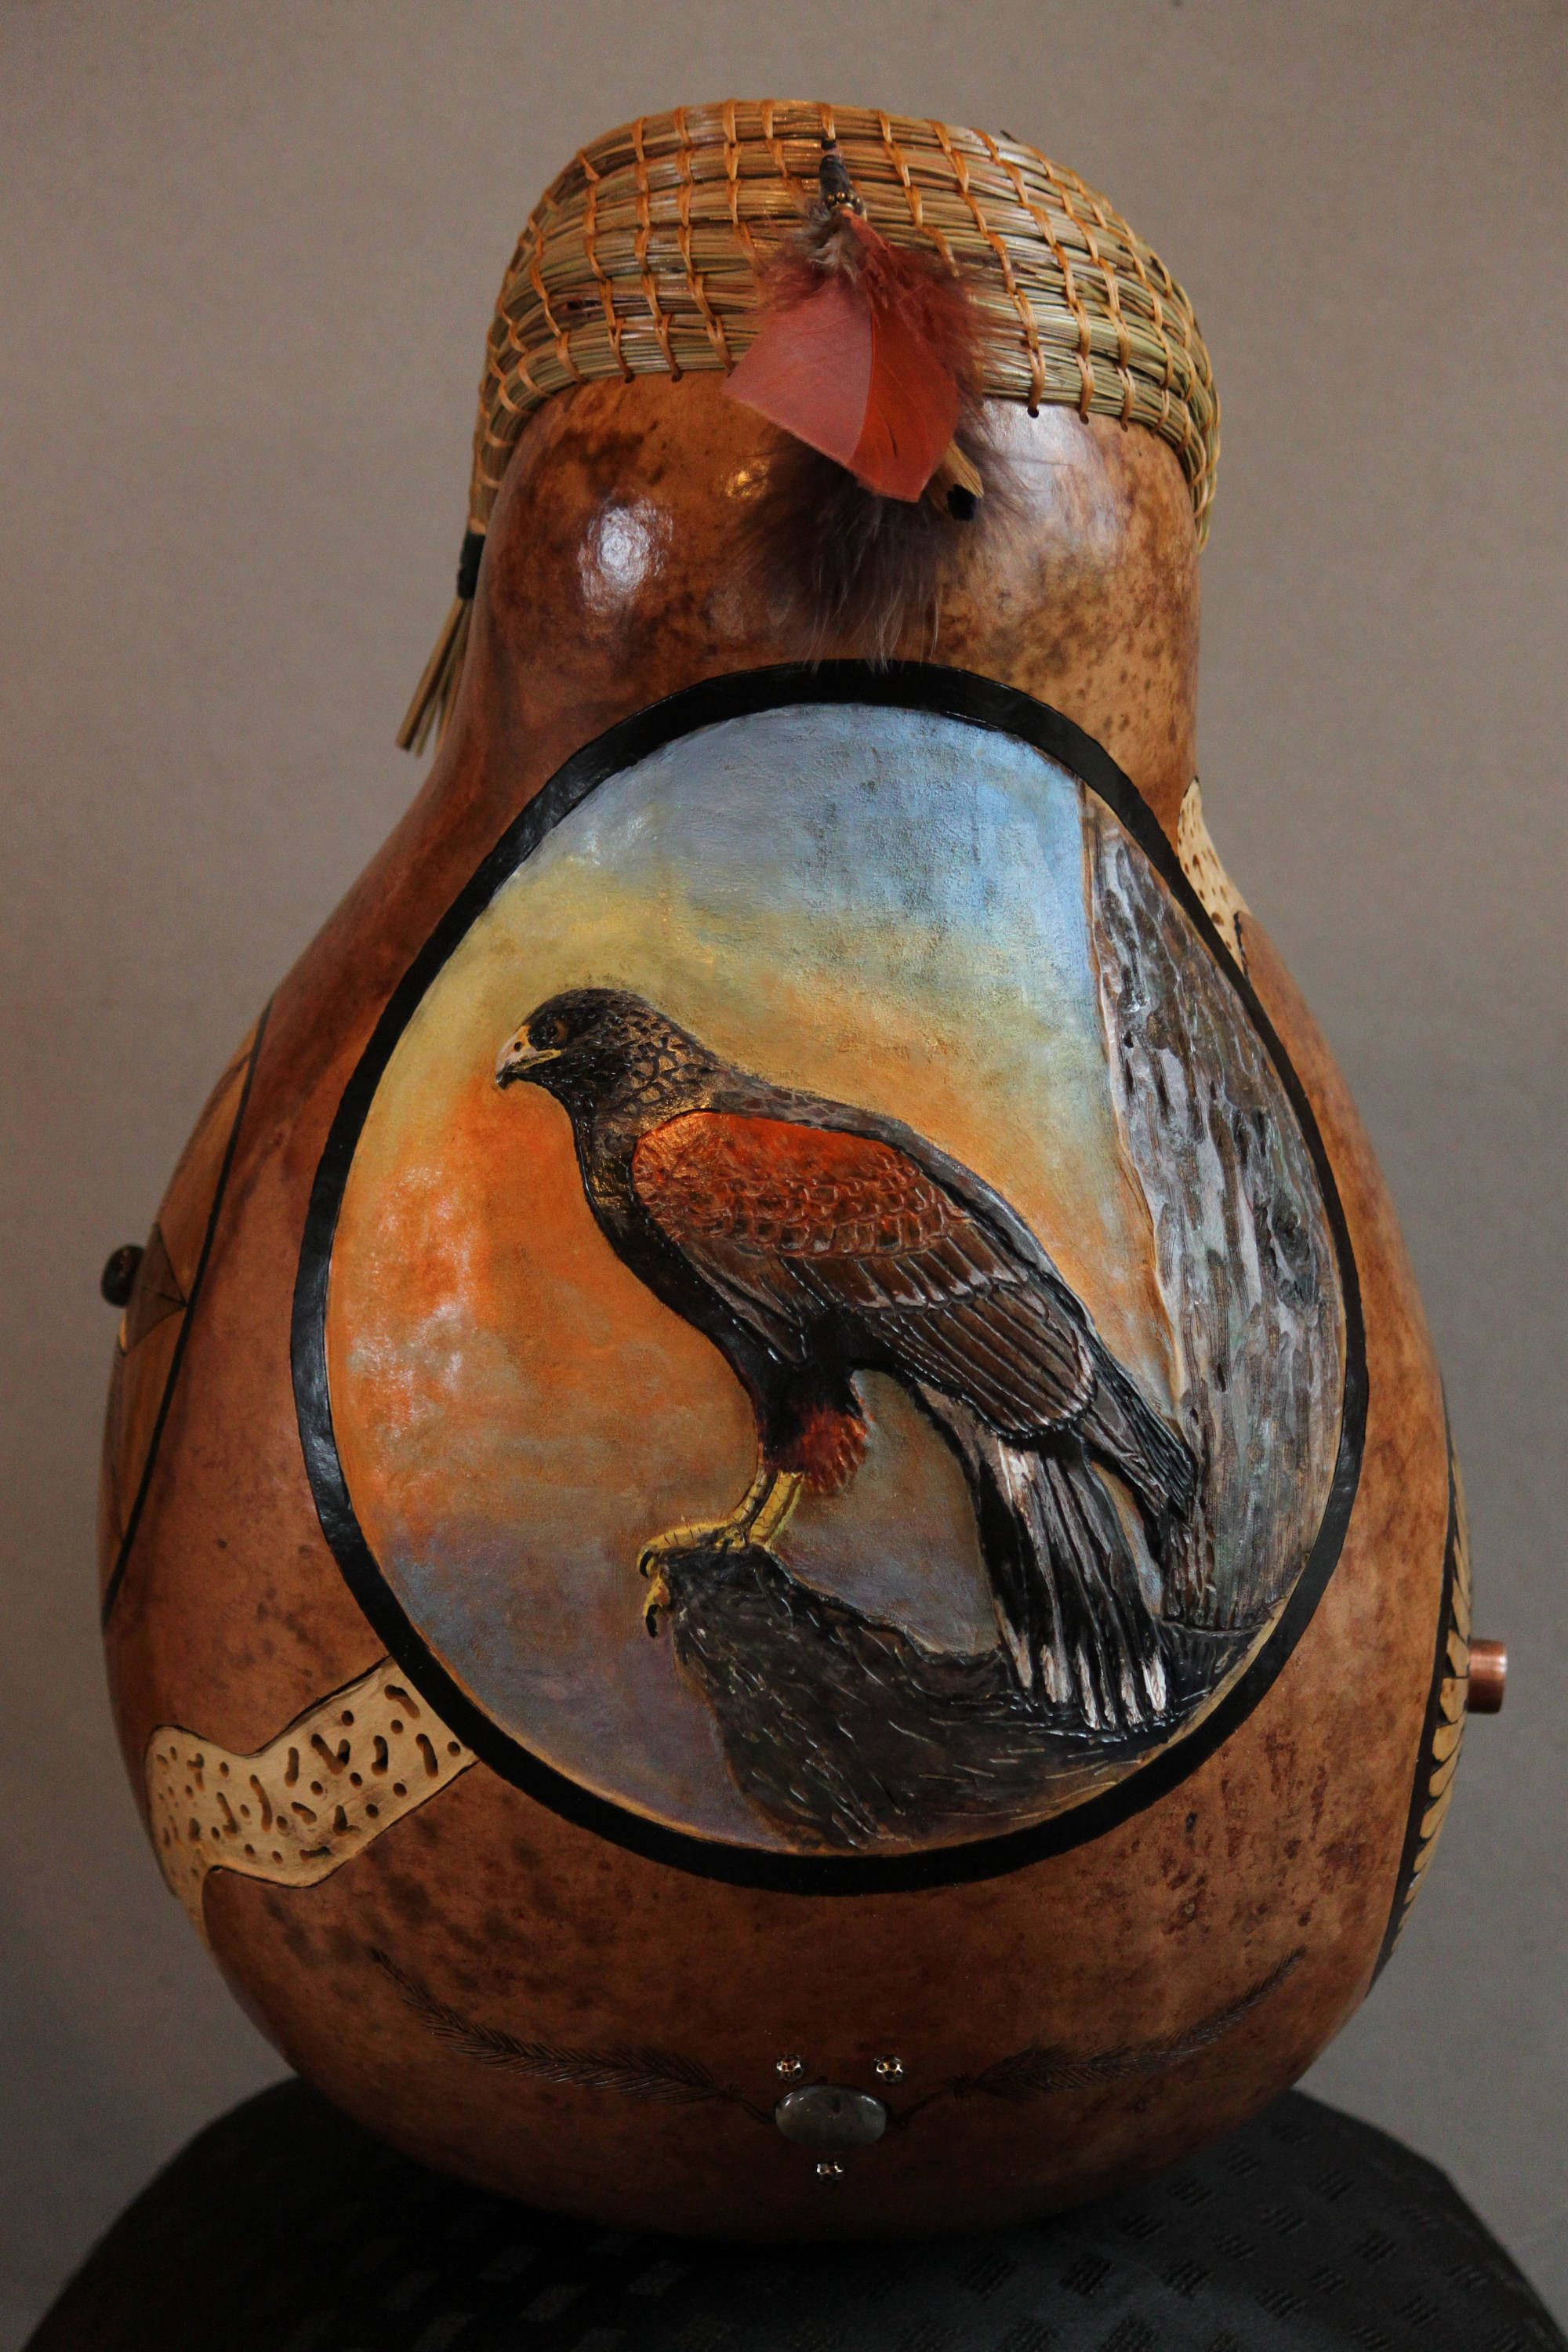 This is a large gourd with a relief carved and painted harriss